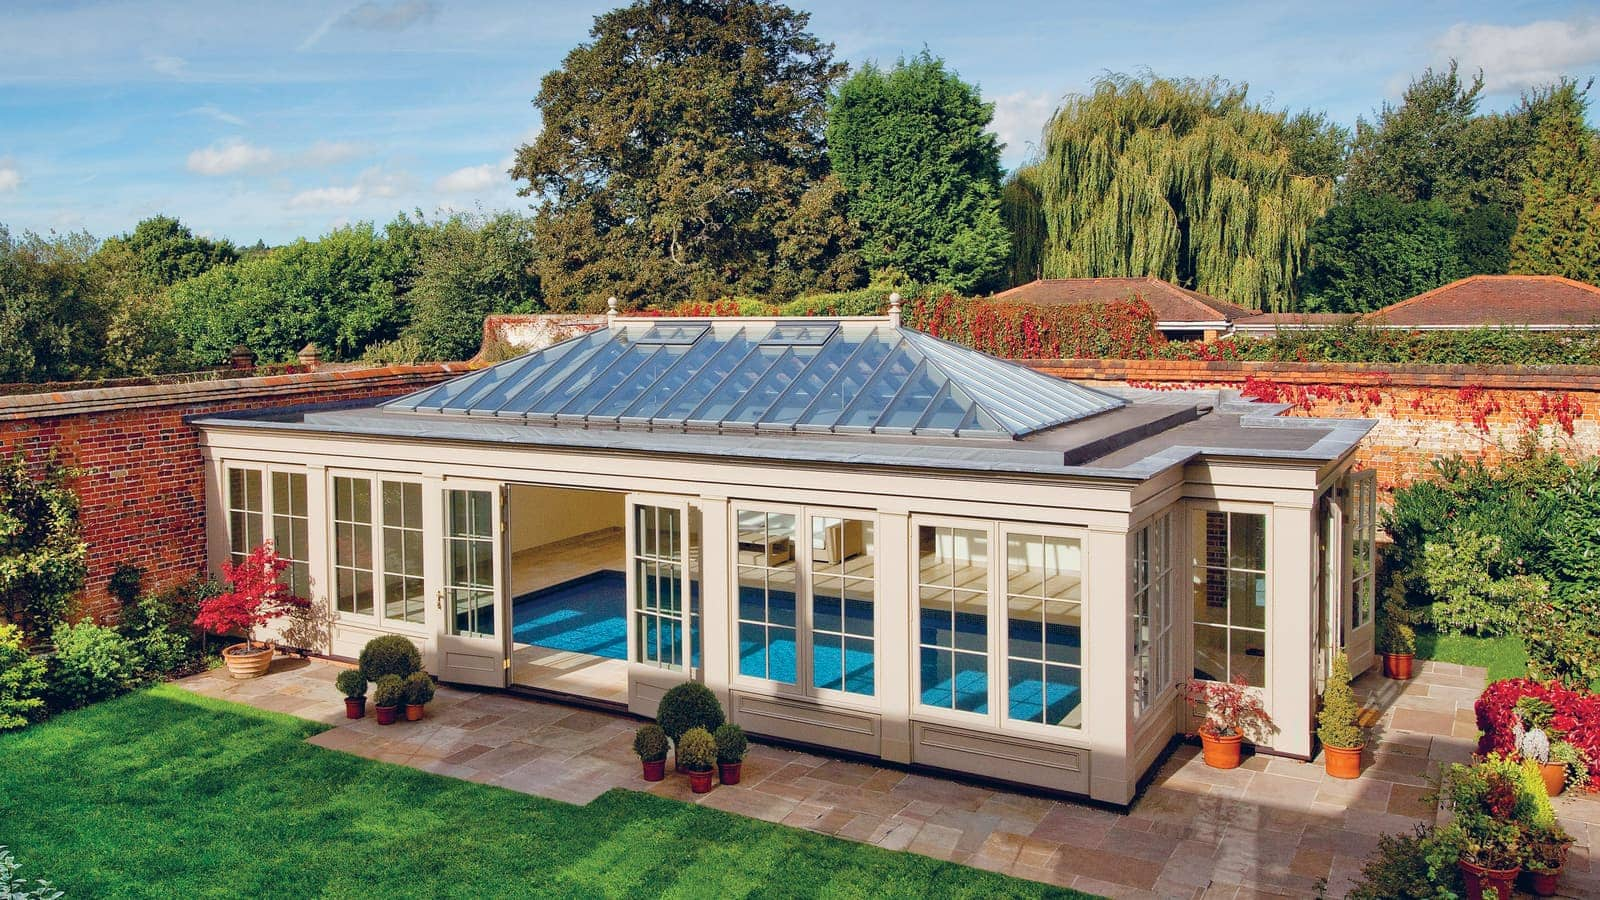 Striking pool house design sitting proudly within the impressive walled garden.